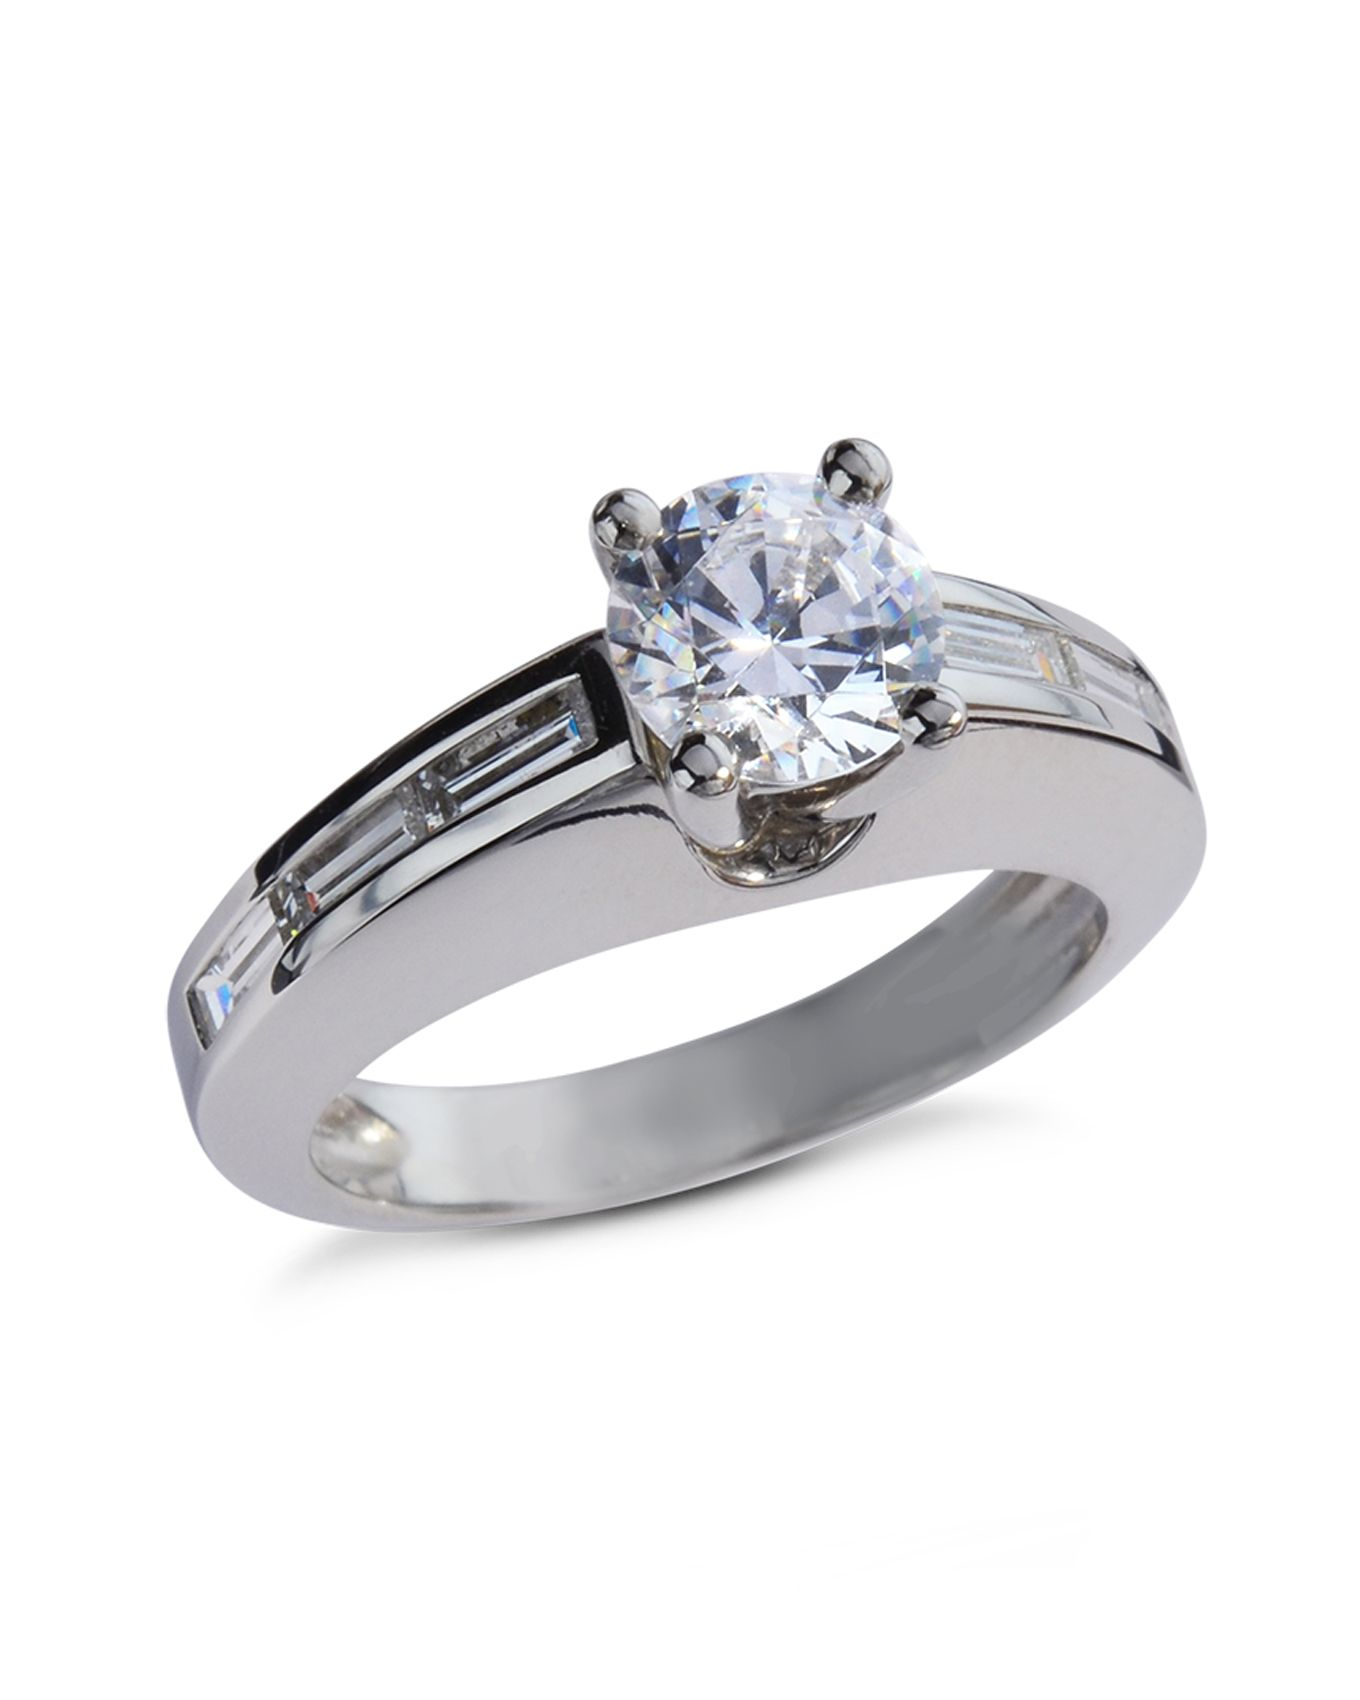 875bde9bd This contemporary platinum channel set diamond engagement ring brings a  modern twist to a classic solitaire.Hand-crafted in precious platinum, ...